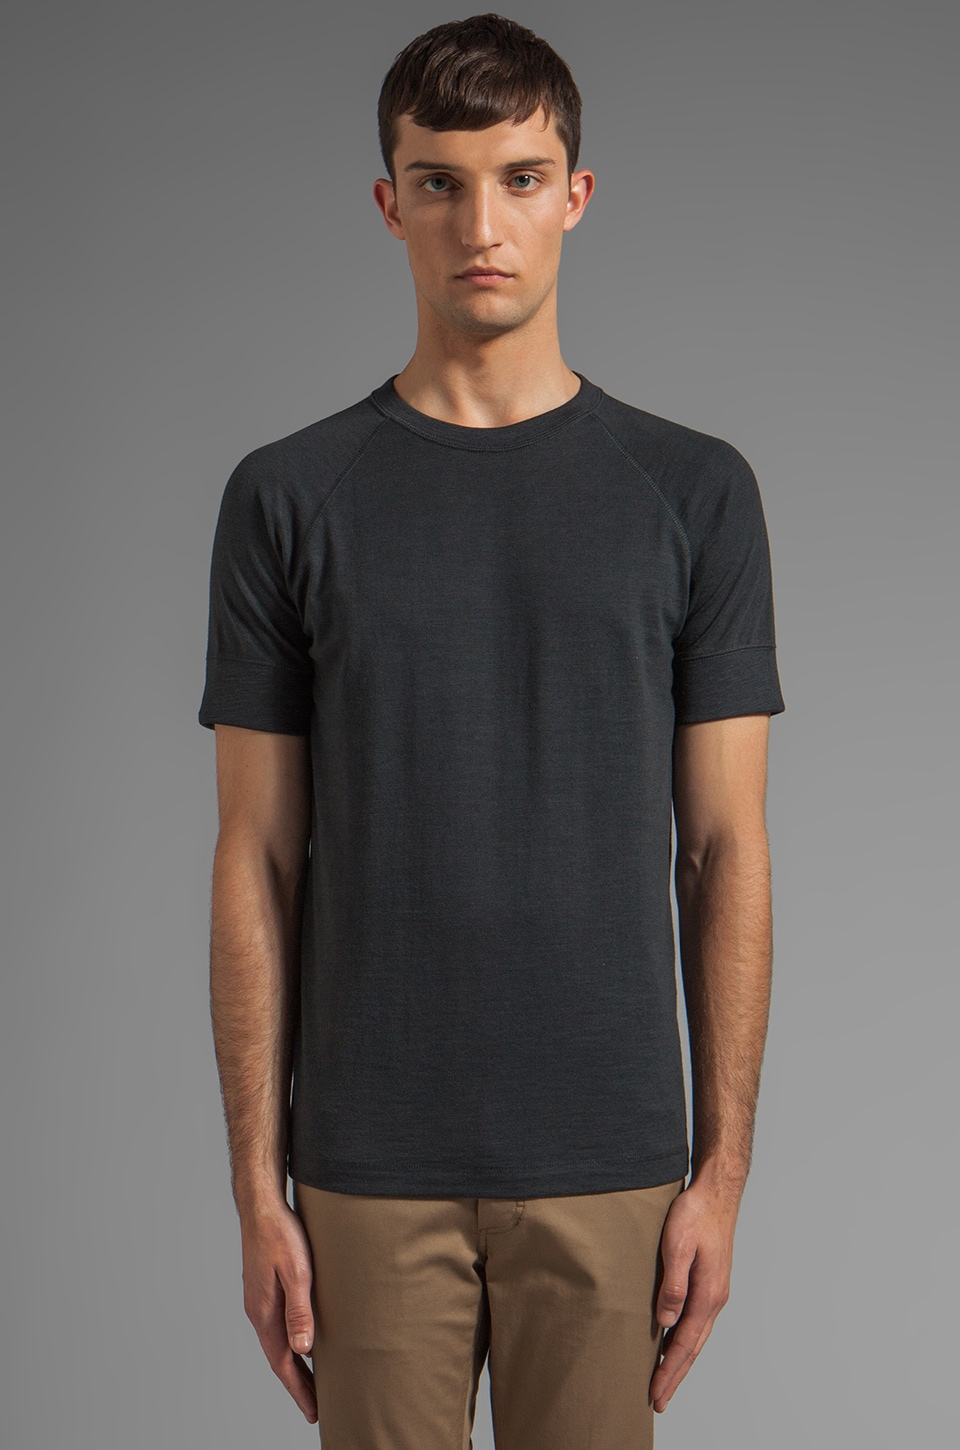 Theory Mikkel RC Tee in Submerge OD